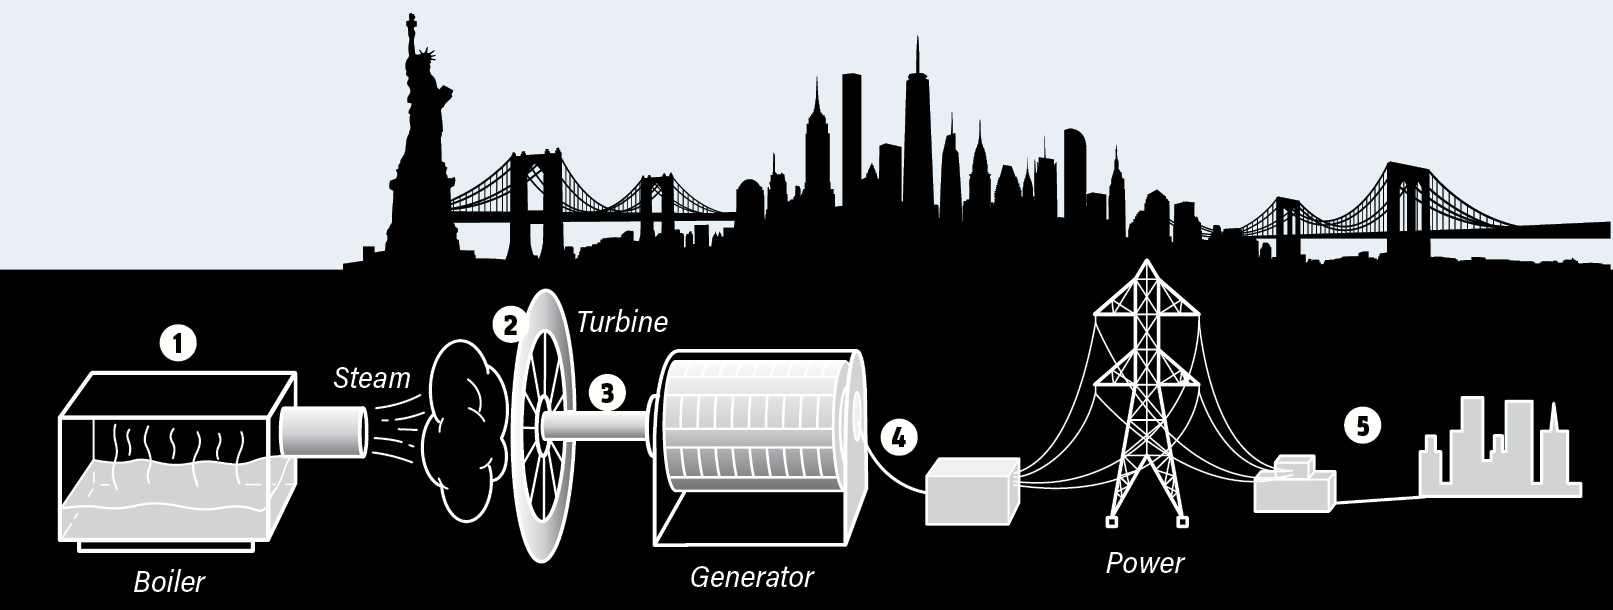 How Steam Powers a City